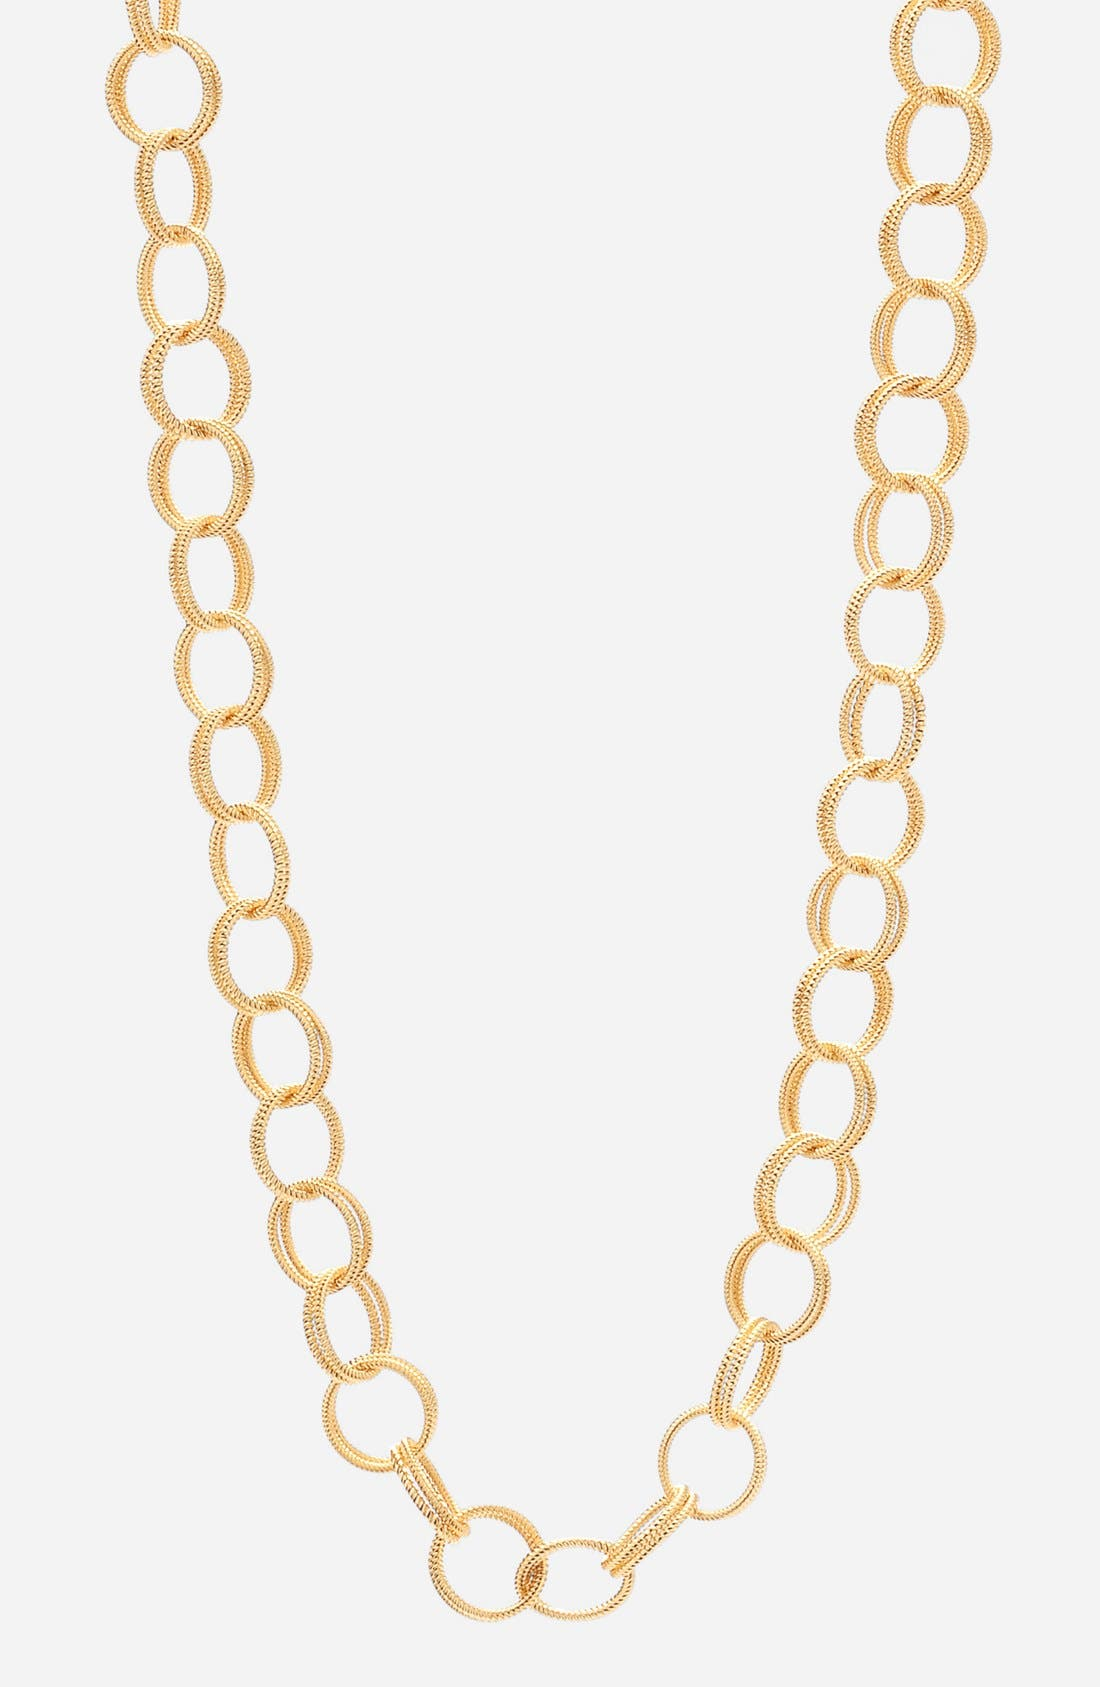 Textured Chain Link Necklace,                             Main thumbnail 1, color,                             710